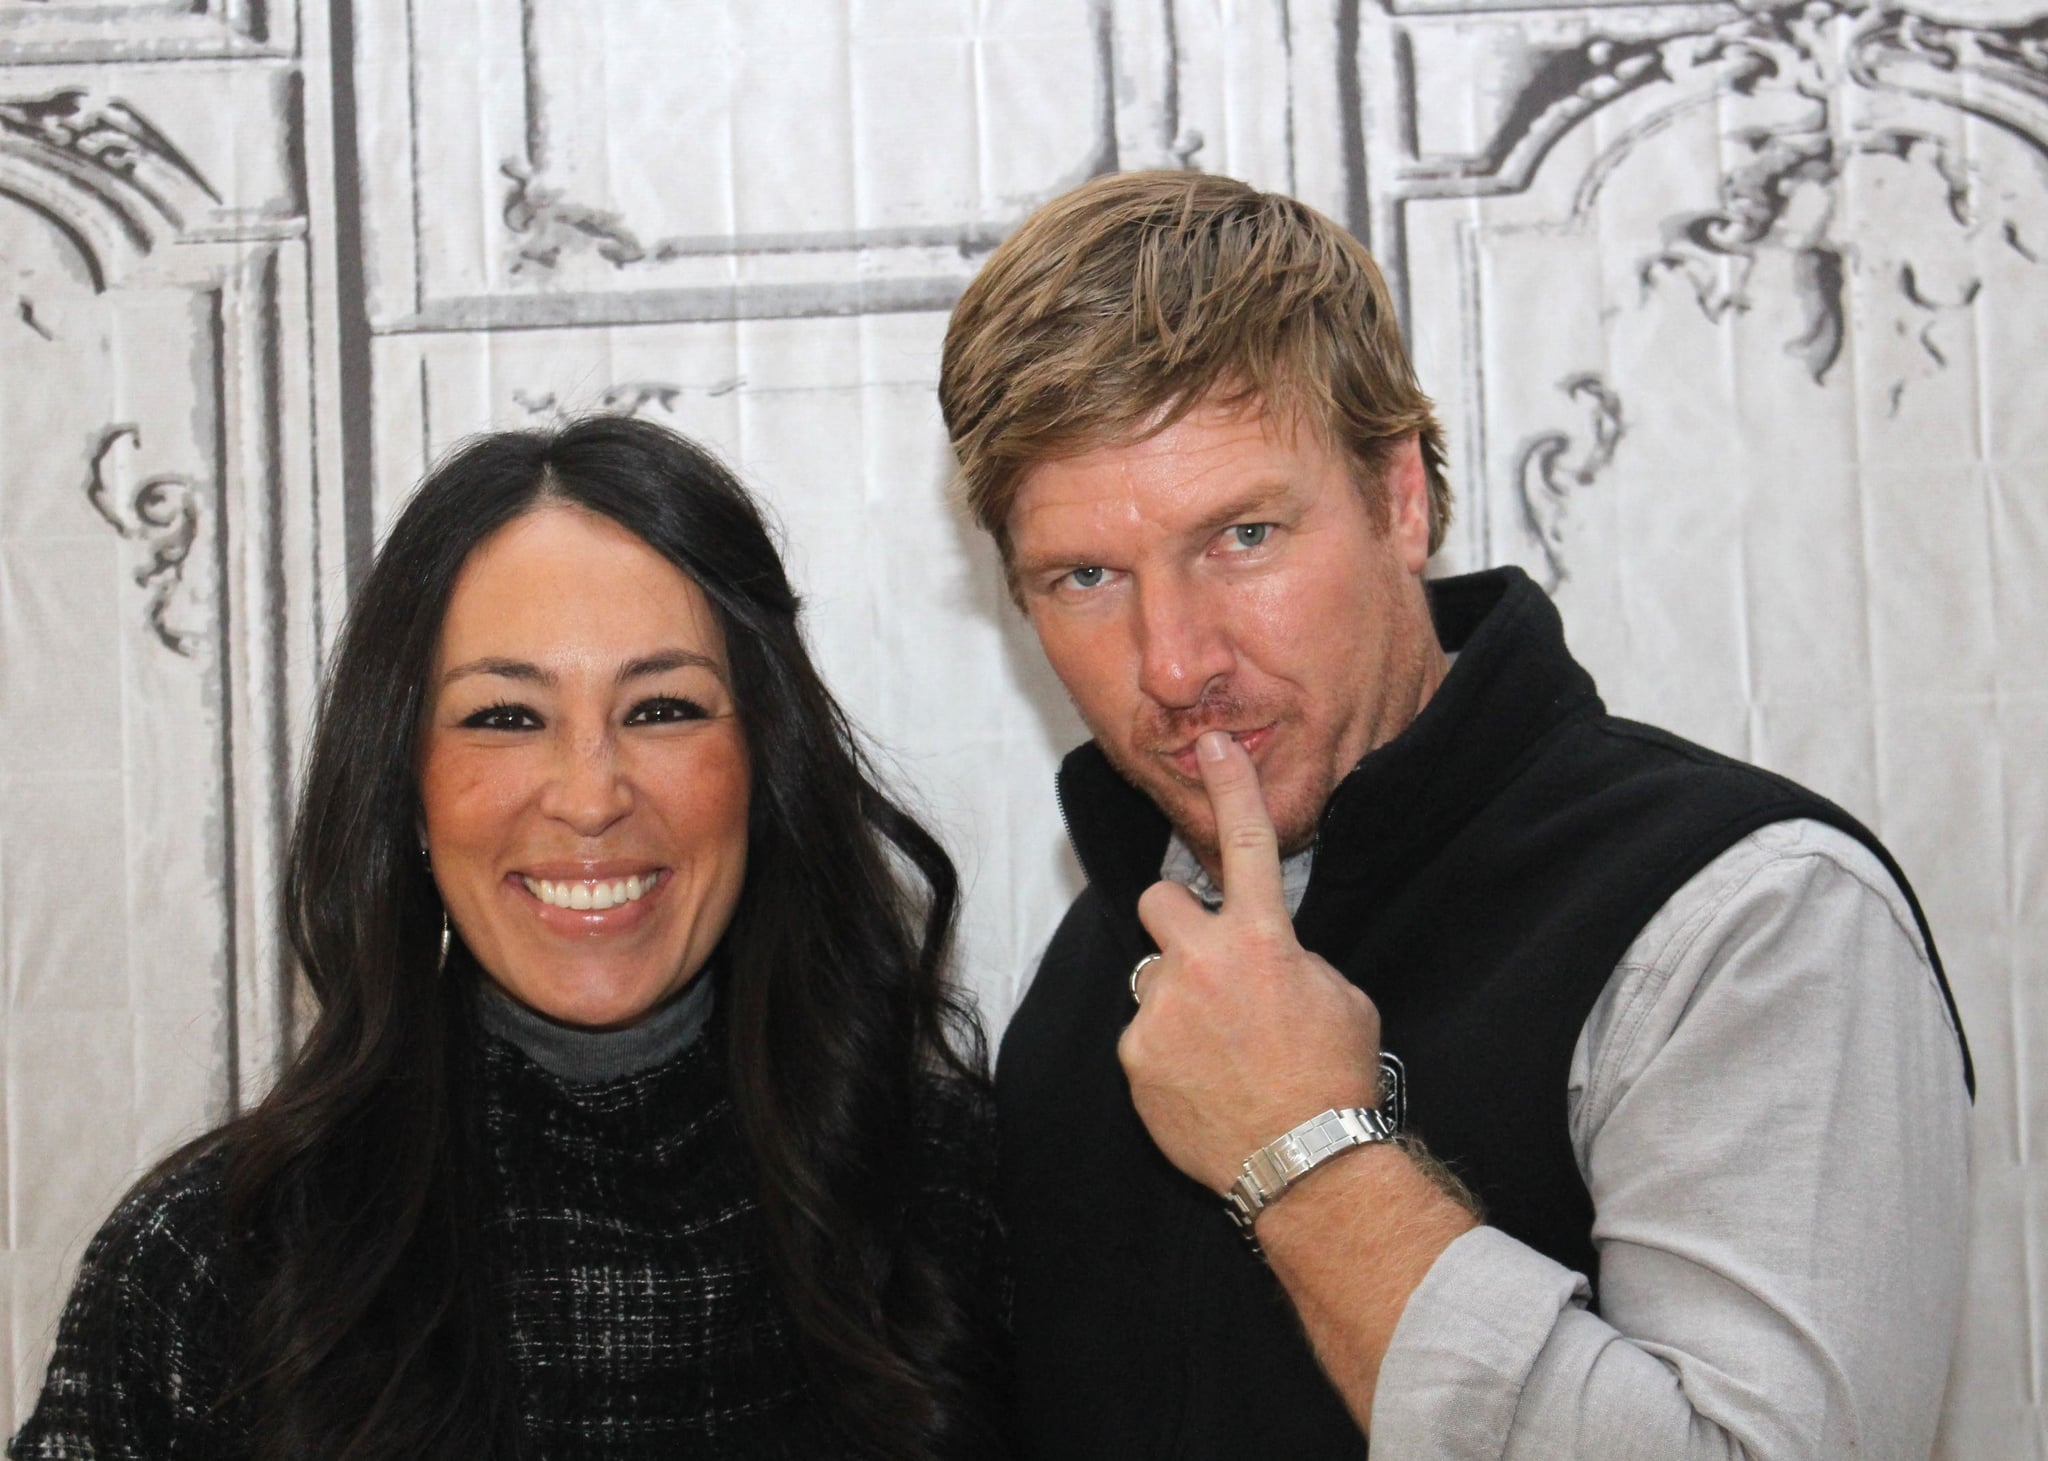 Hgtv 39 s chip and joanna gaines interview popsugar home for Chip and joanna gaines getting divorced